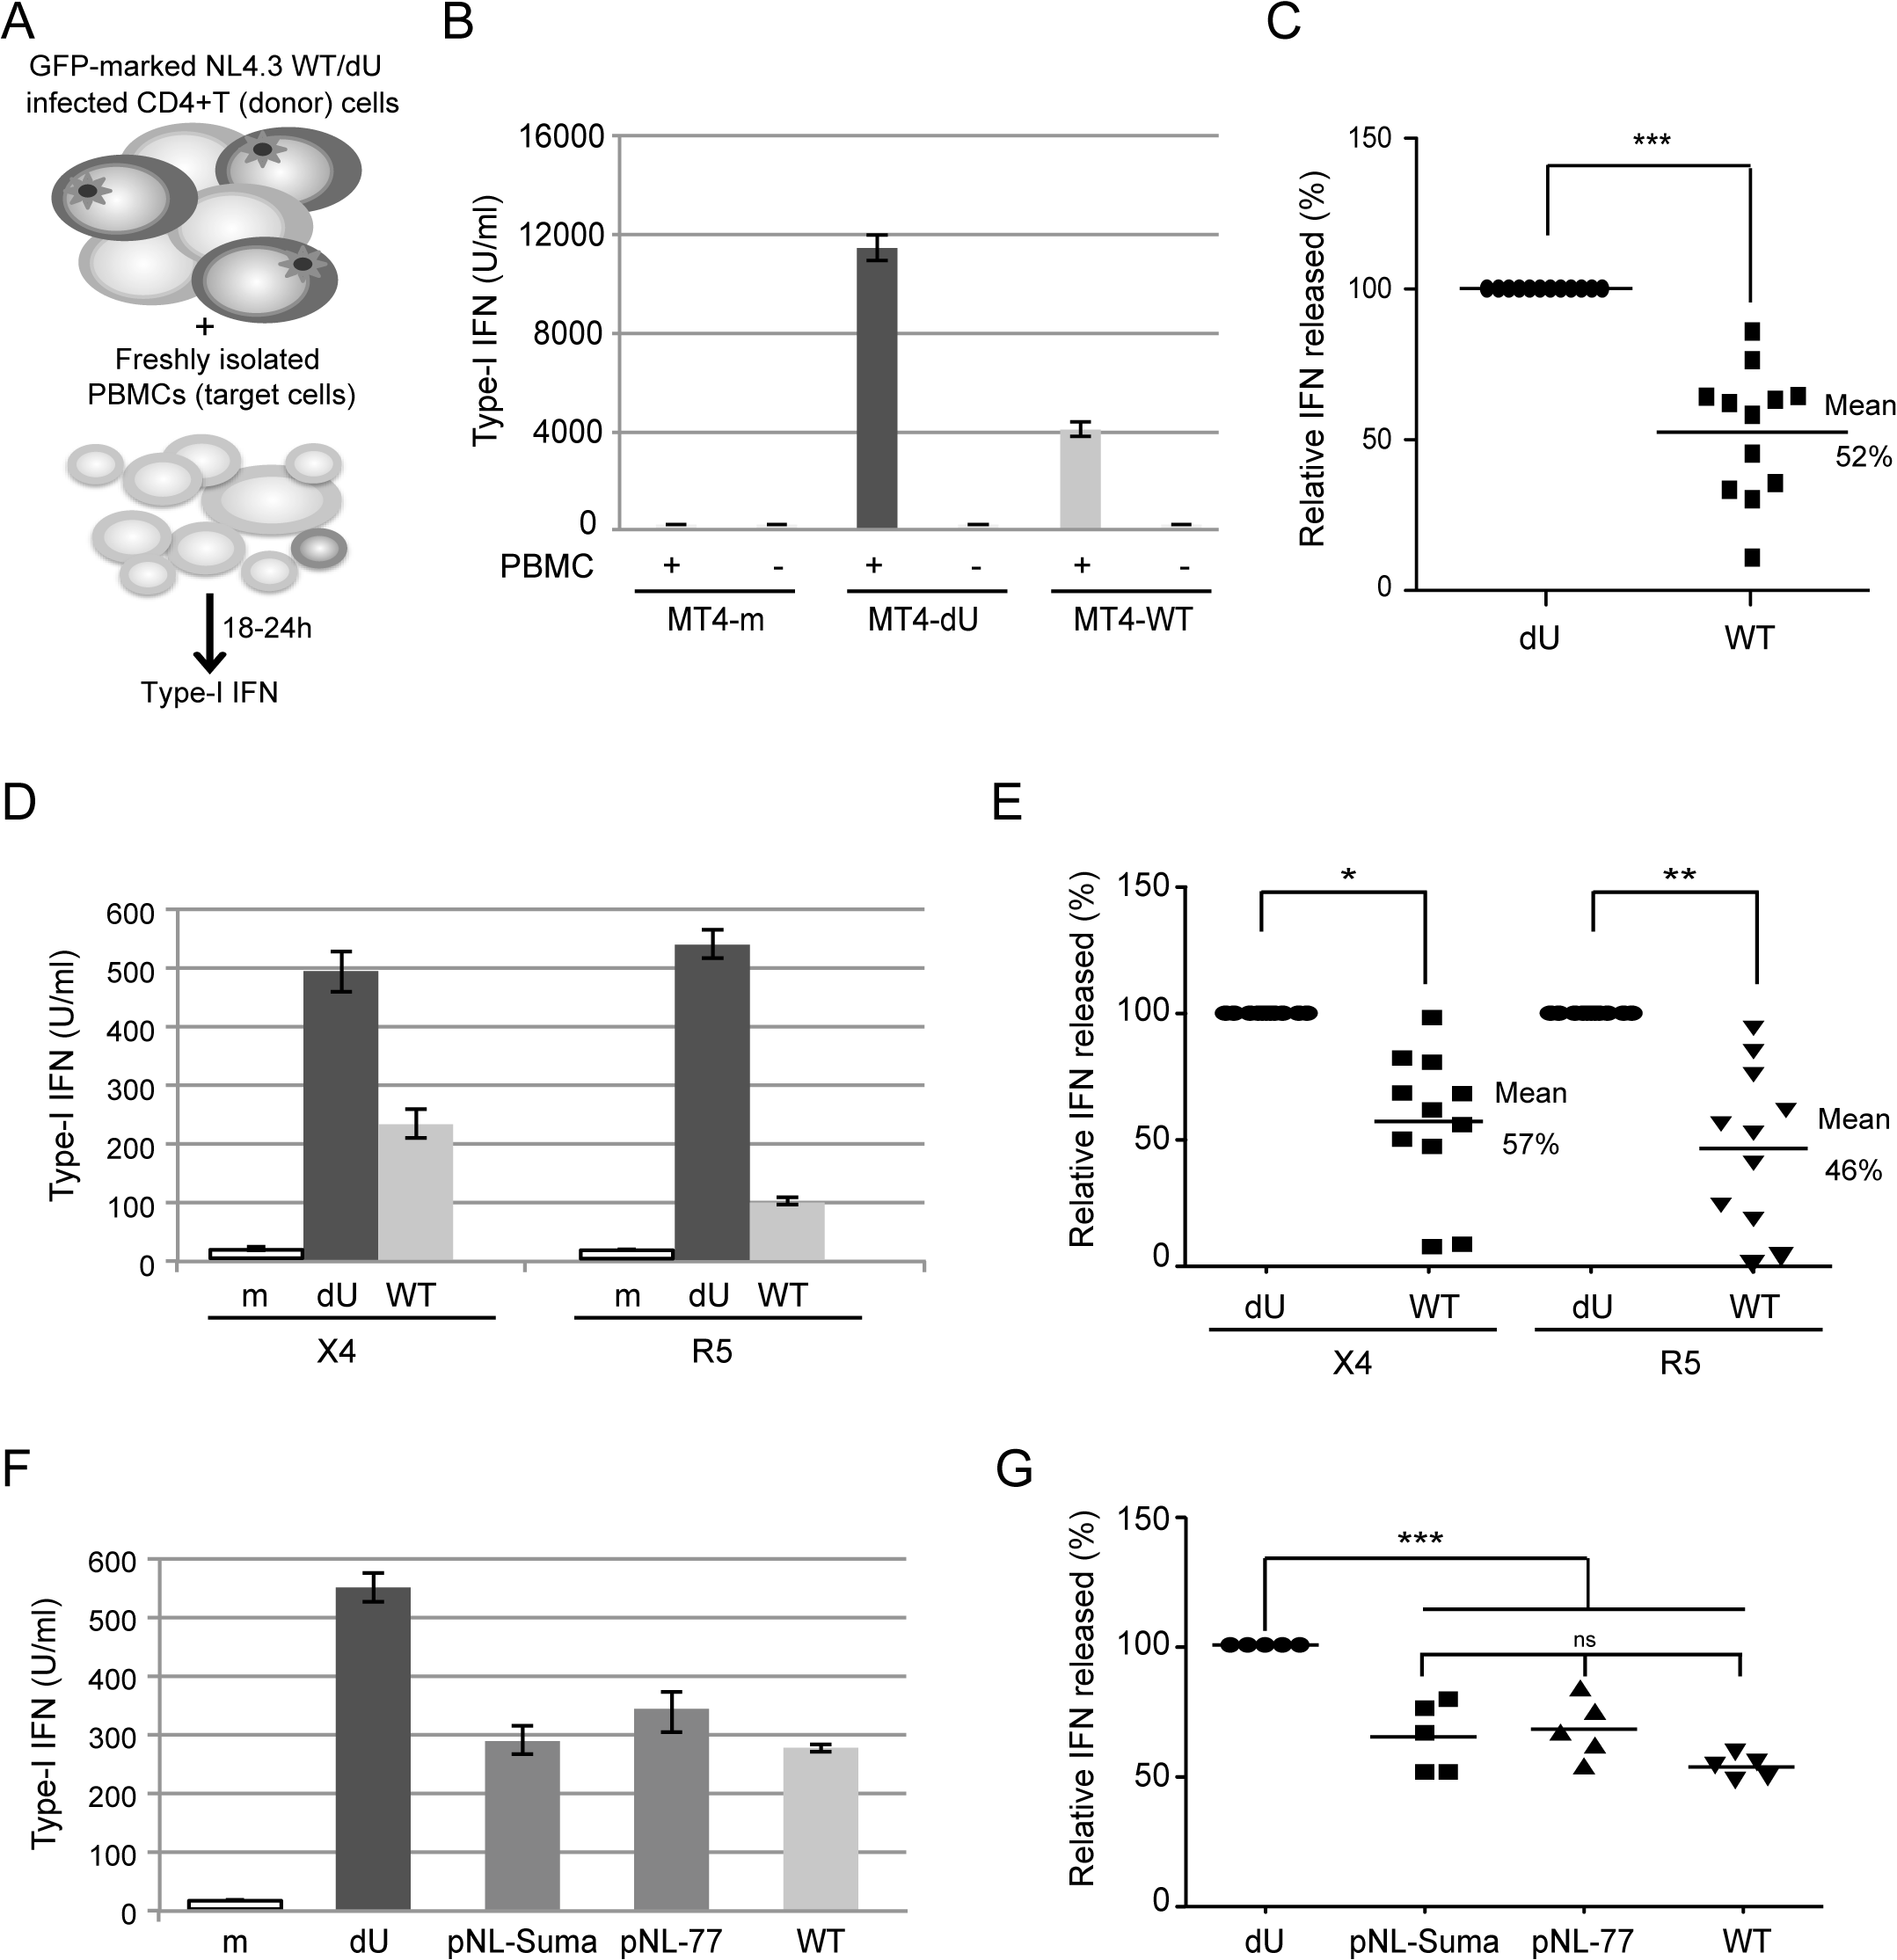 Vpu controls IFN-I production by PBMCs following contact with HIV-infected CD4+ T cells.